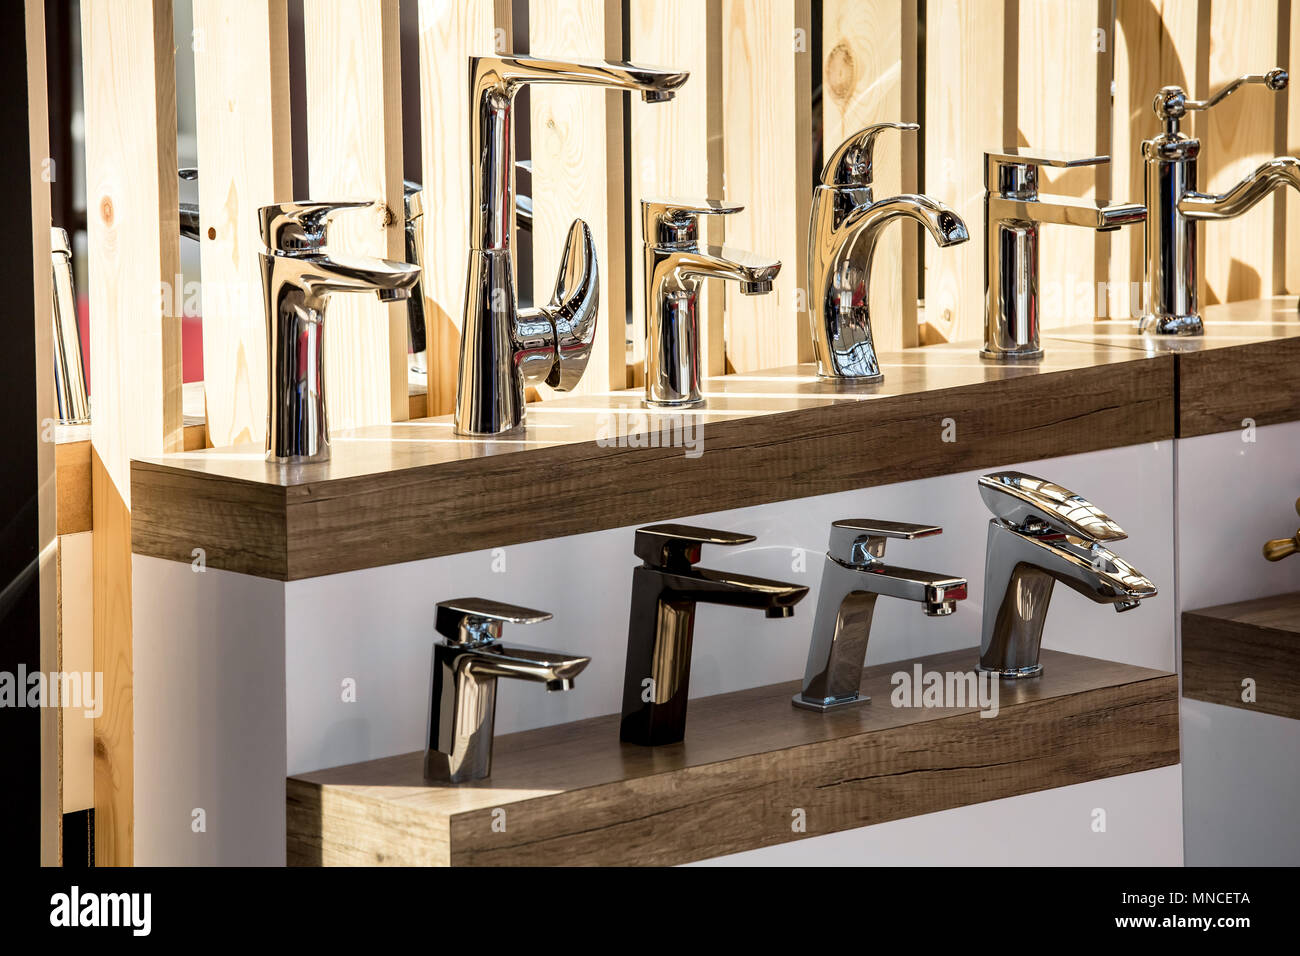 Shop Kitchen Faucets | Variety Of Vintage Chrome And Silver Metal Kitchen Faucets In The